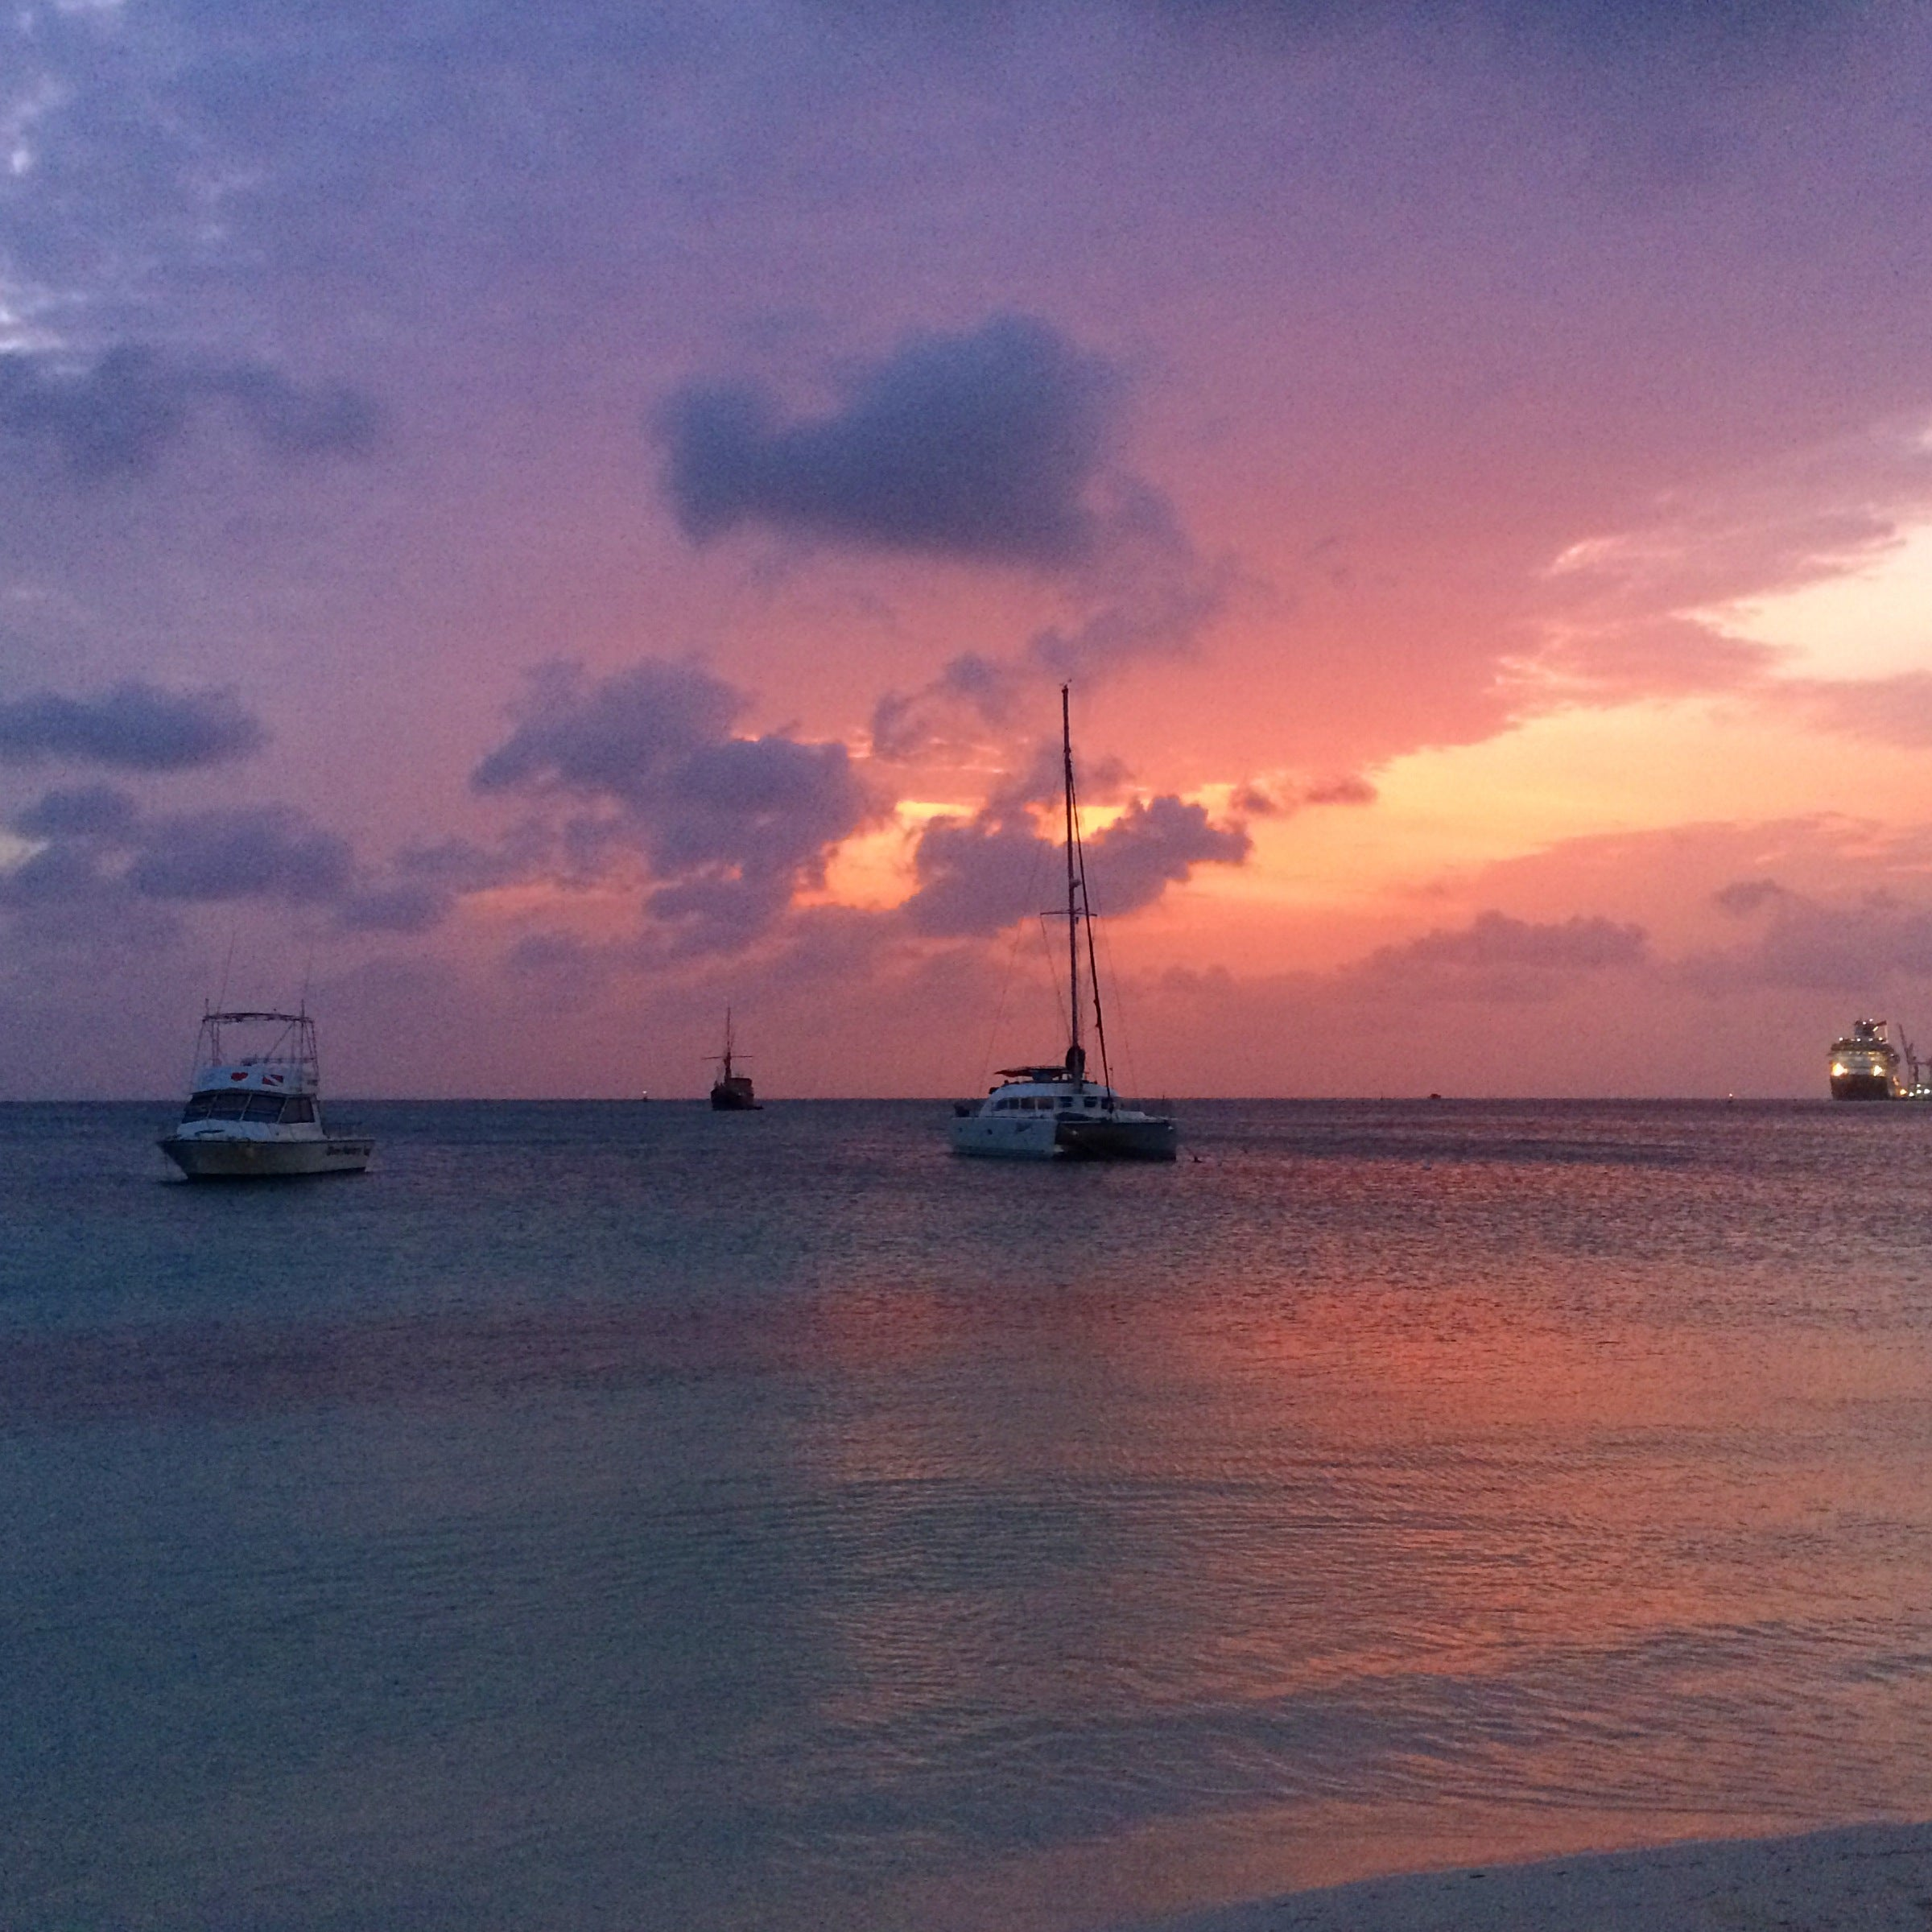 Aruba Sunset by KARMA for a cure Margaux